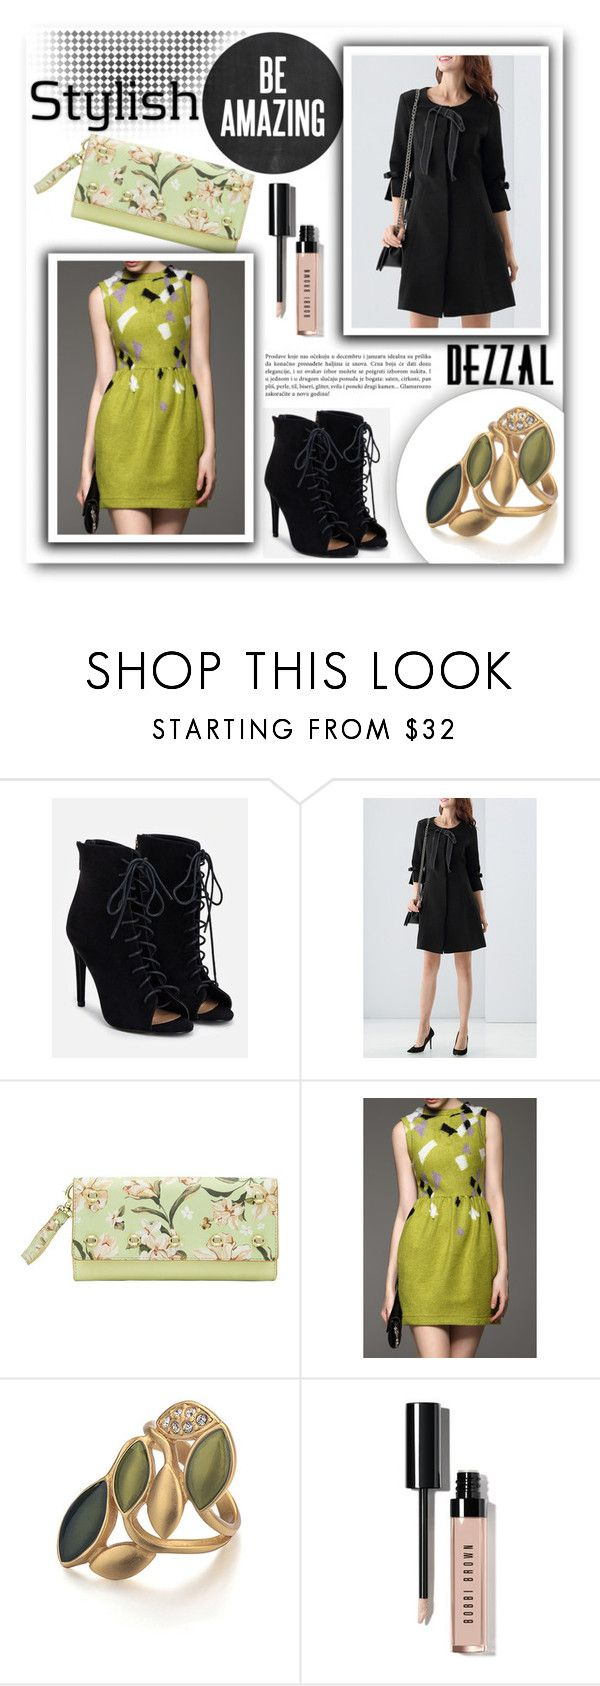 """""""Fall stylish"""" by tanja133 ❤ liked on Polyvore featuring JustFab, Bobbi Brown Cosmetics, Fall, autumn and dezzal"""